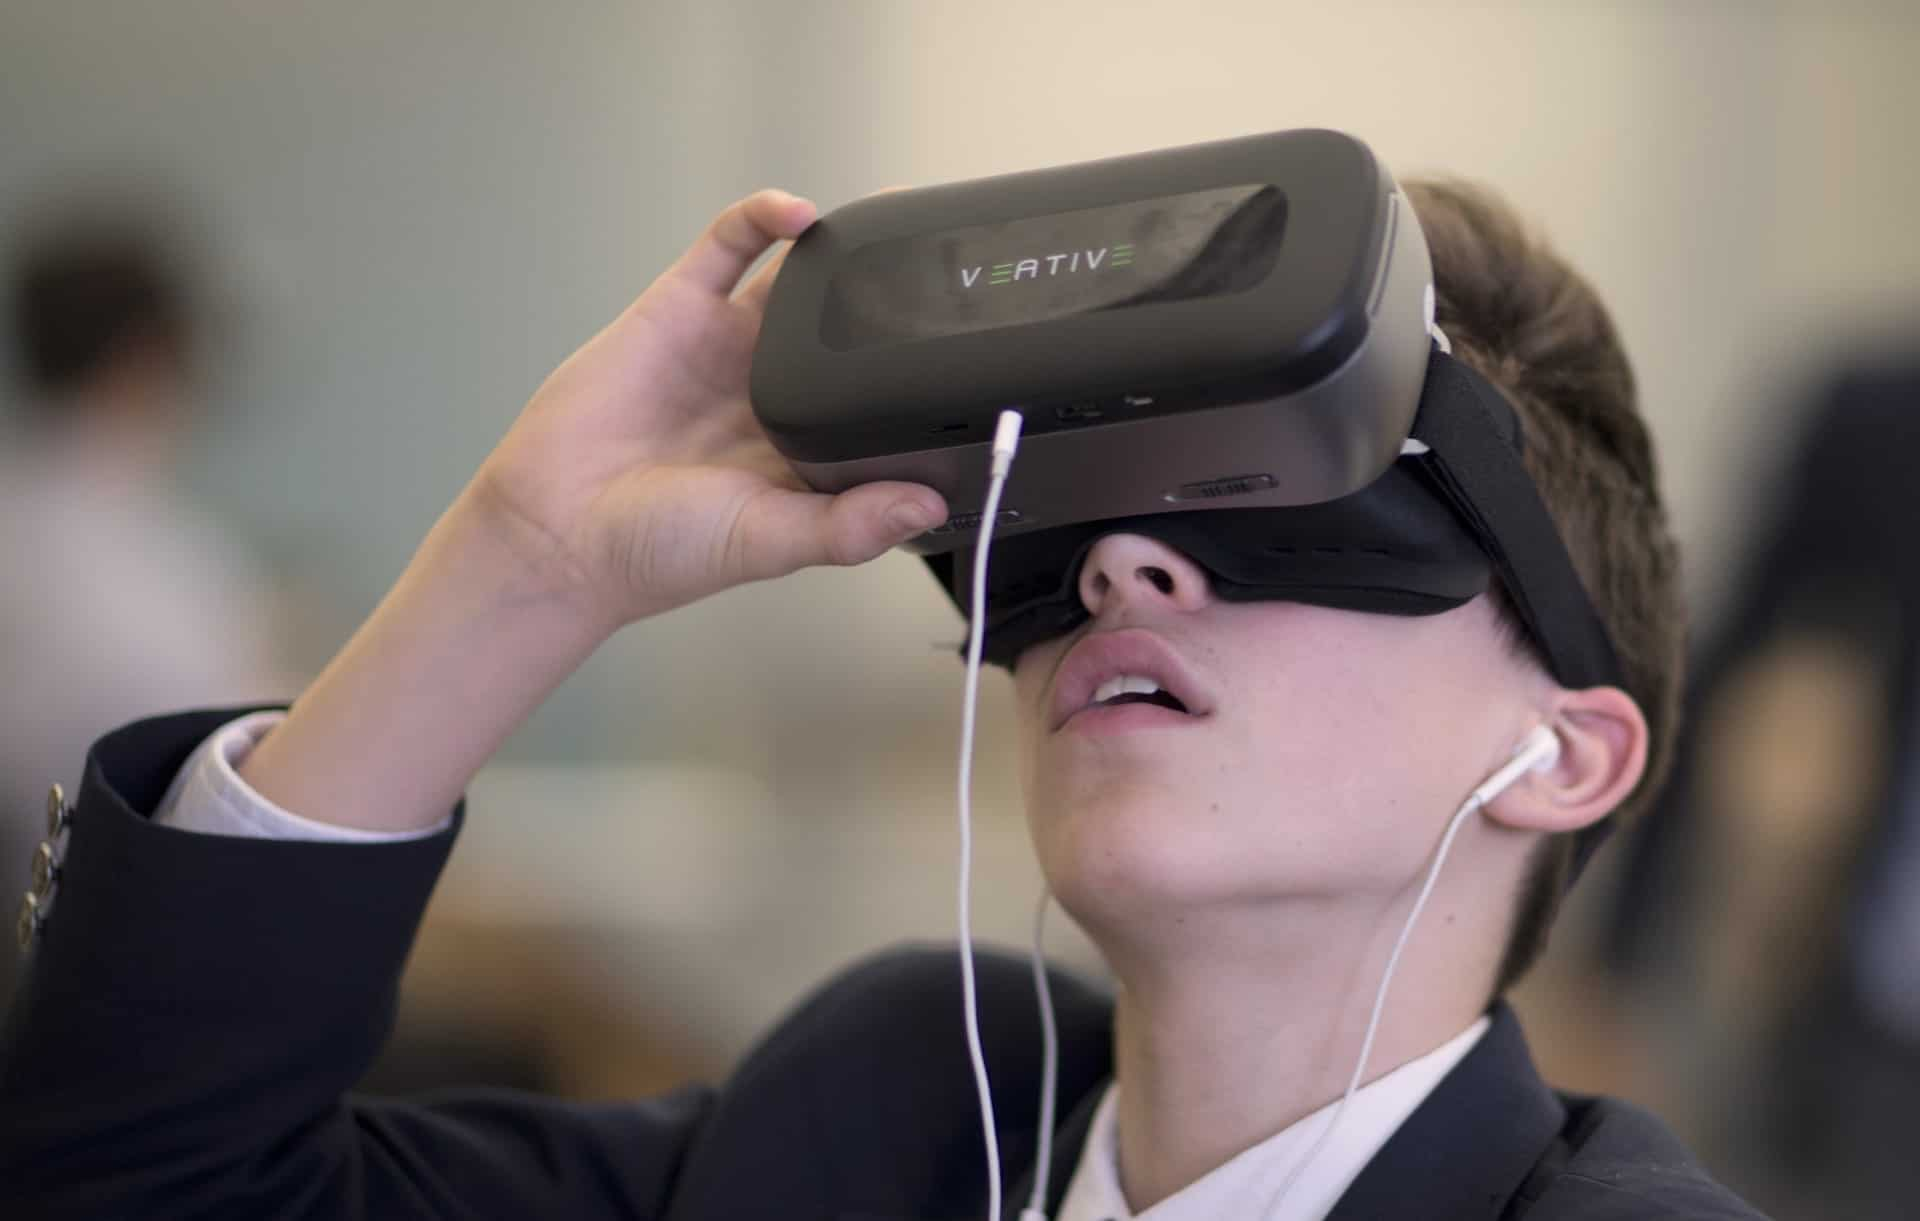 Learning science in immersive VR (virtual reality)